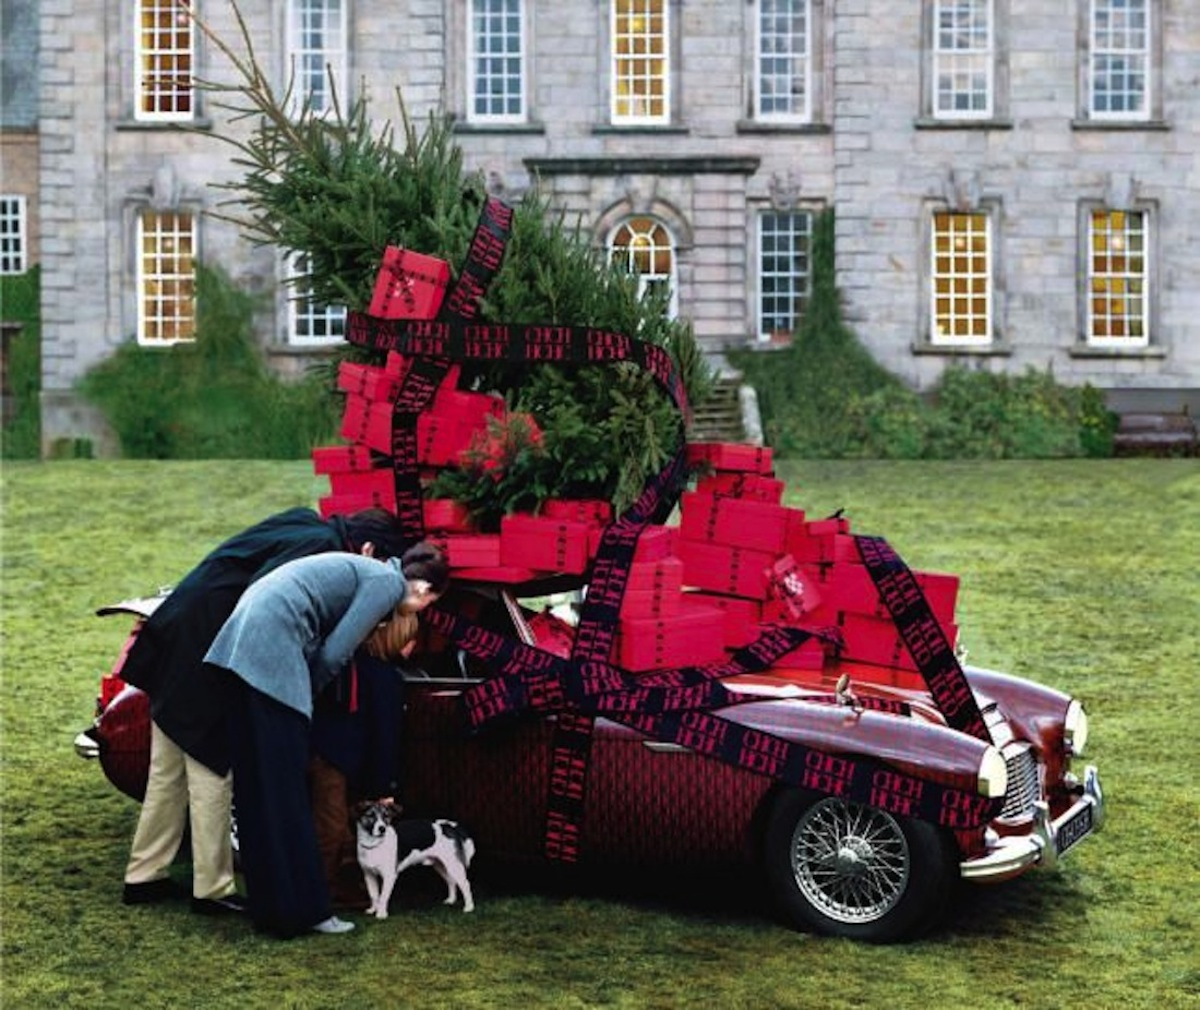 Carolina Herrera - Car & Christmas presents